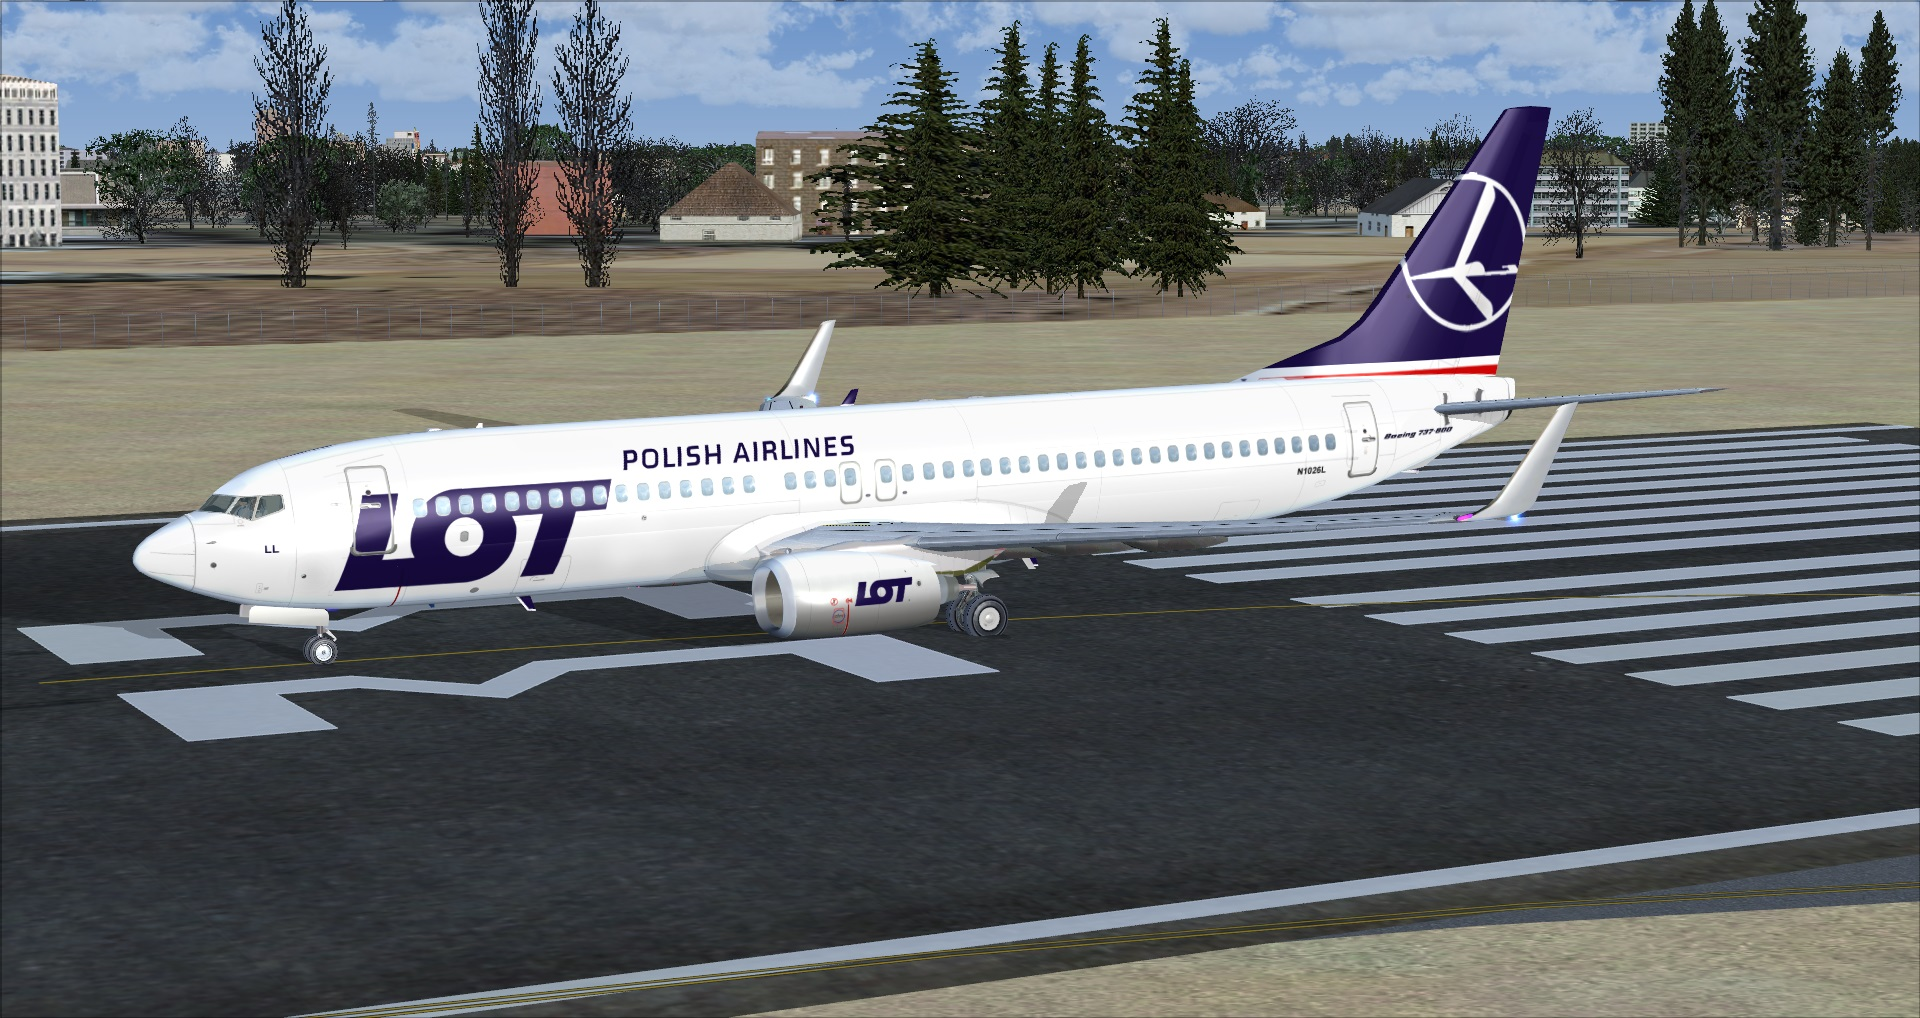 fs-freeware net - FSX Boeing 737-800 LOT Polish Airlines with VC and FMC